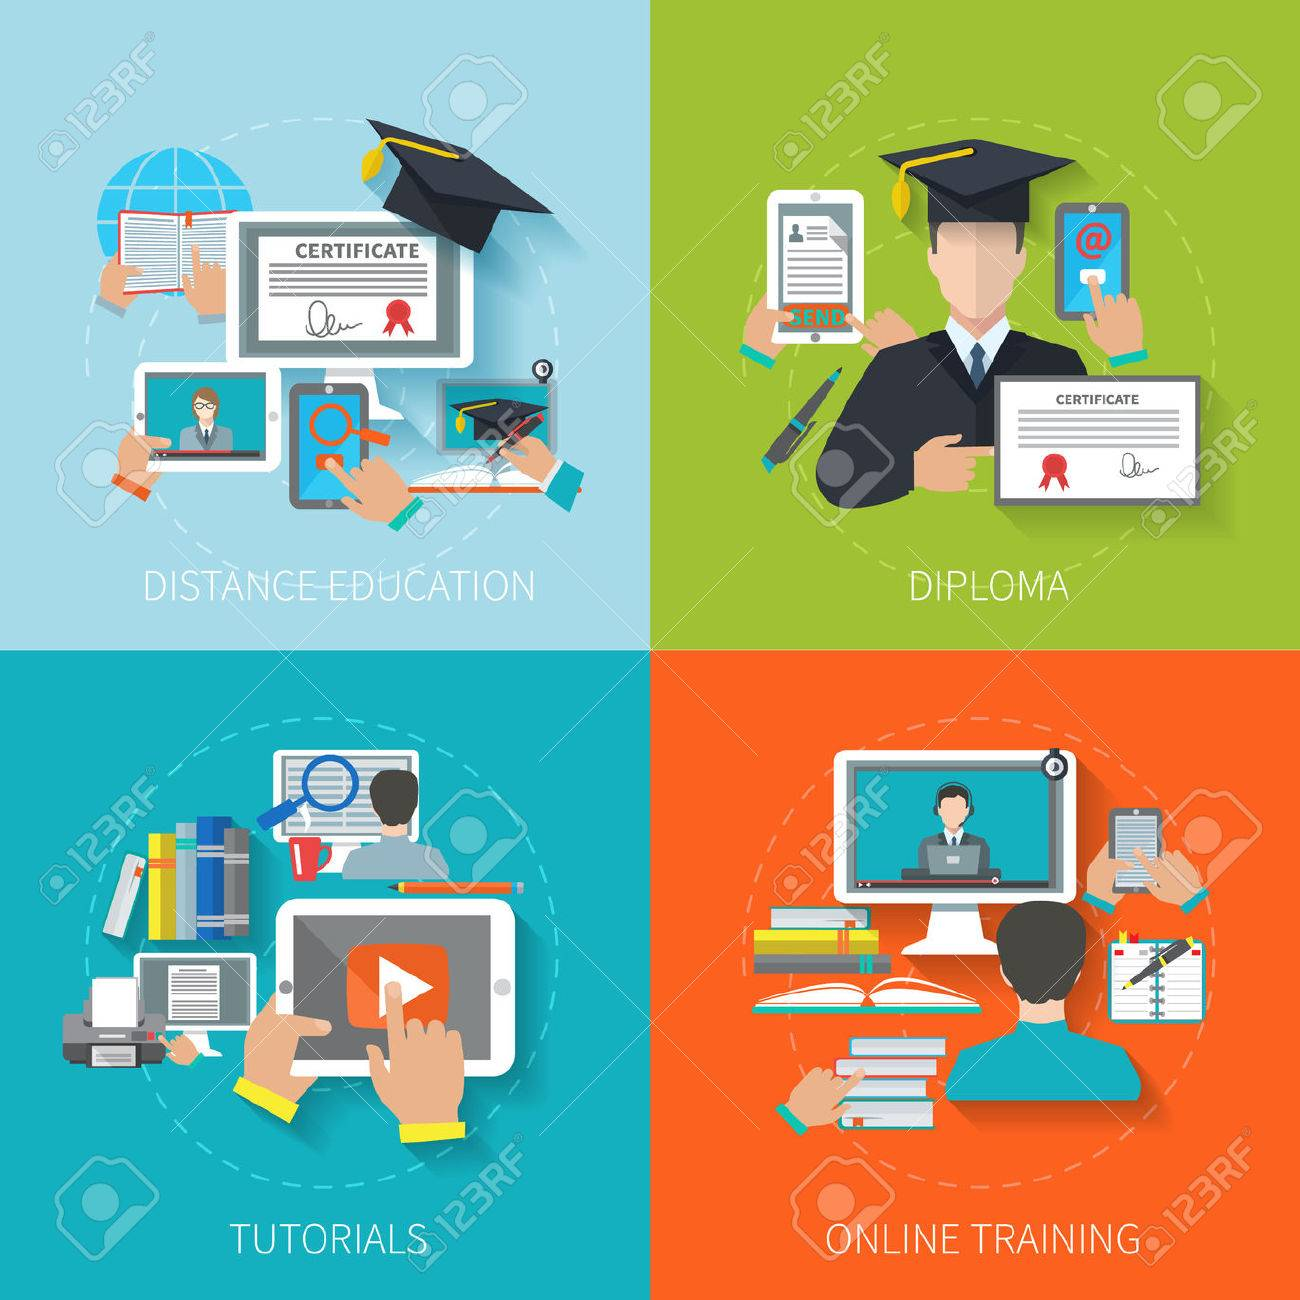 online education design concept set distance diploma  online education design concept set distance diploma tutorials training flat icons isolated vector illustration stock